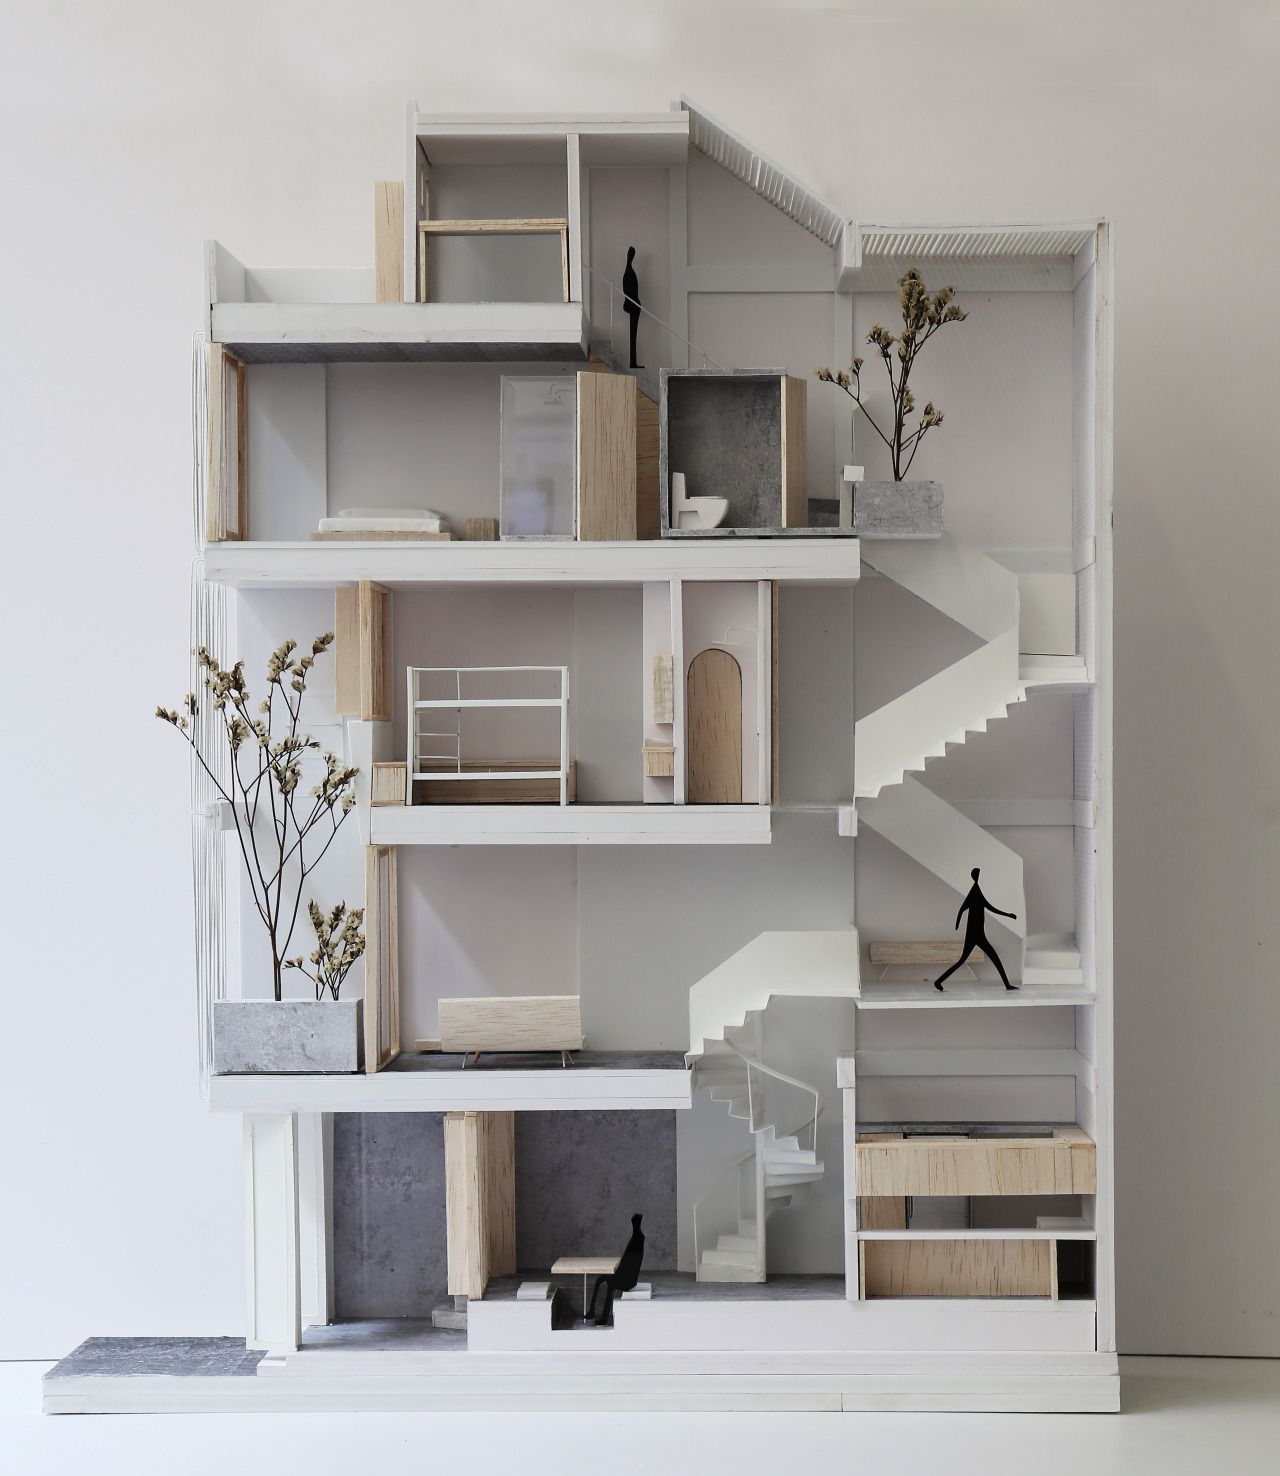 7x18 house ahl architects associates maquetas for Apartment matchmaker